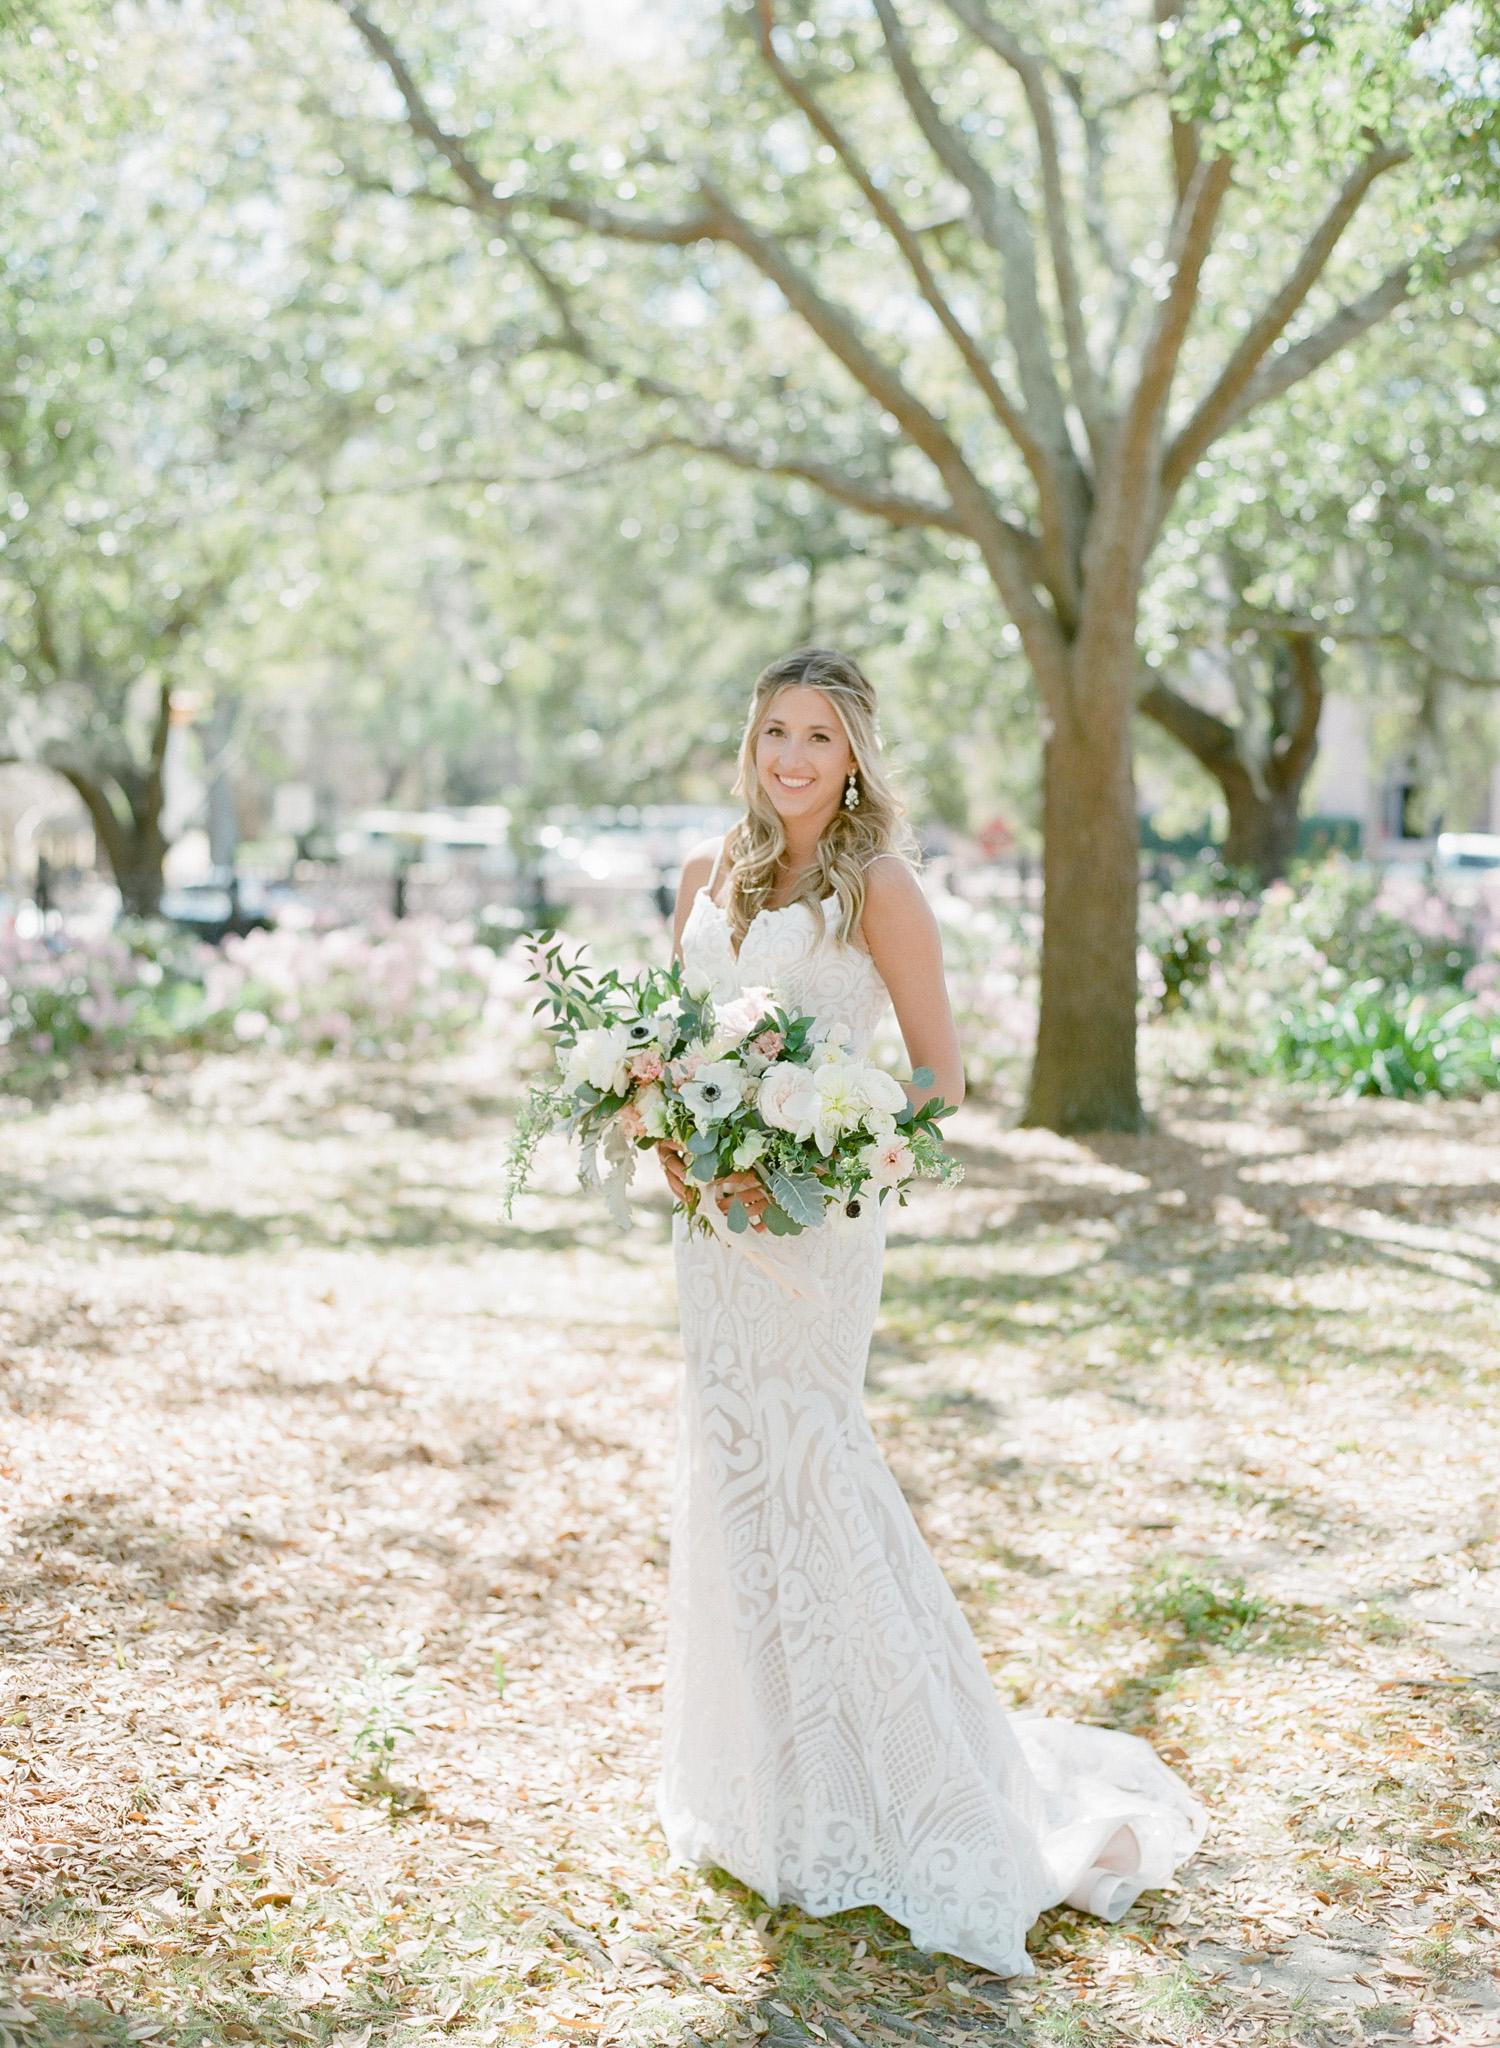 Charleston-Wedding-Hotel-Bennett-28.jpg